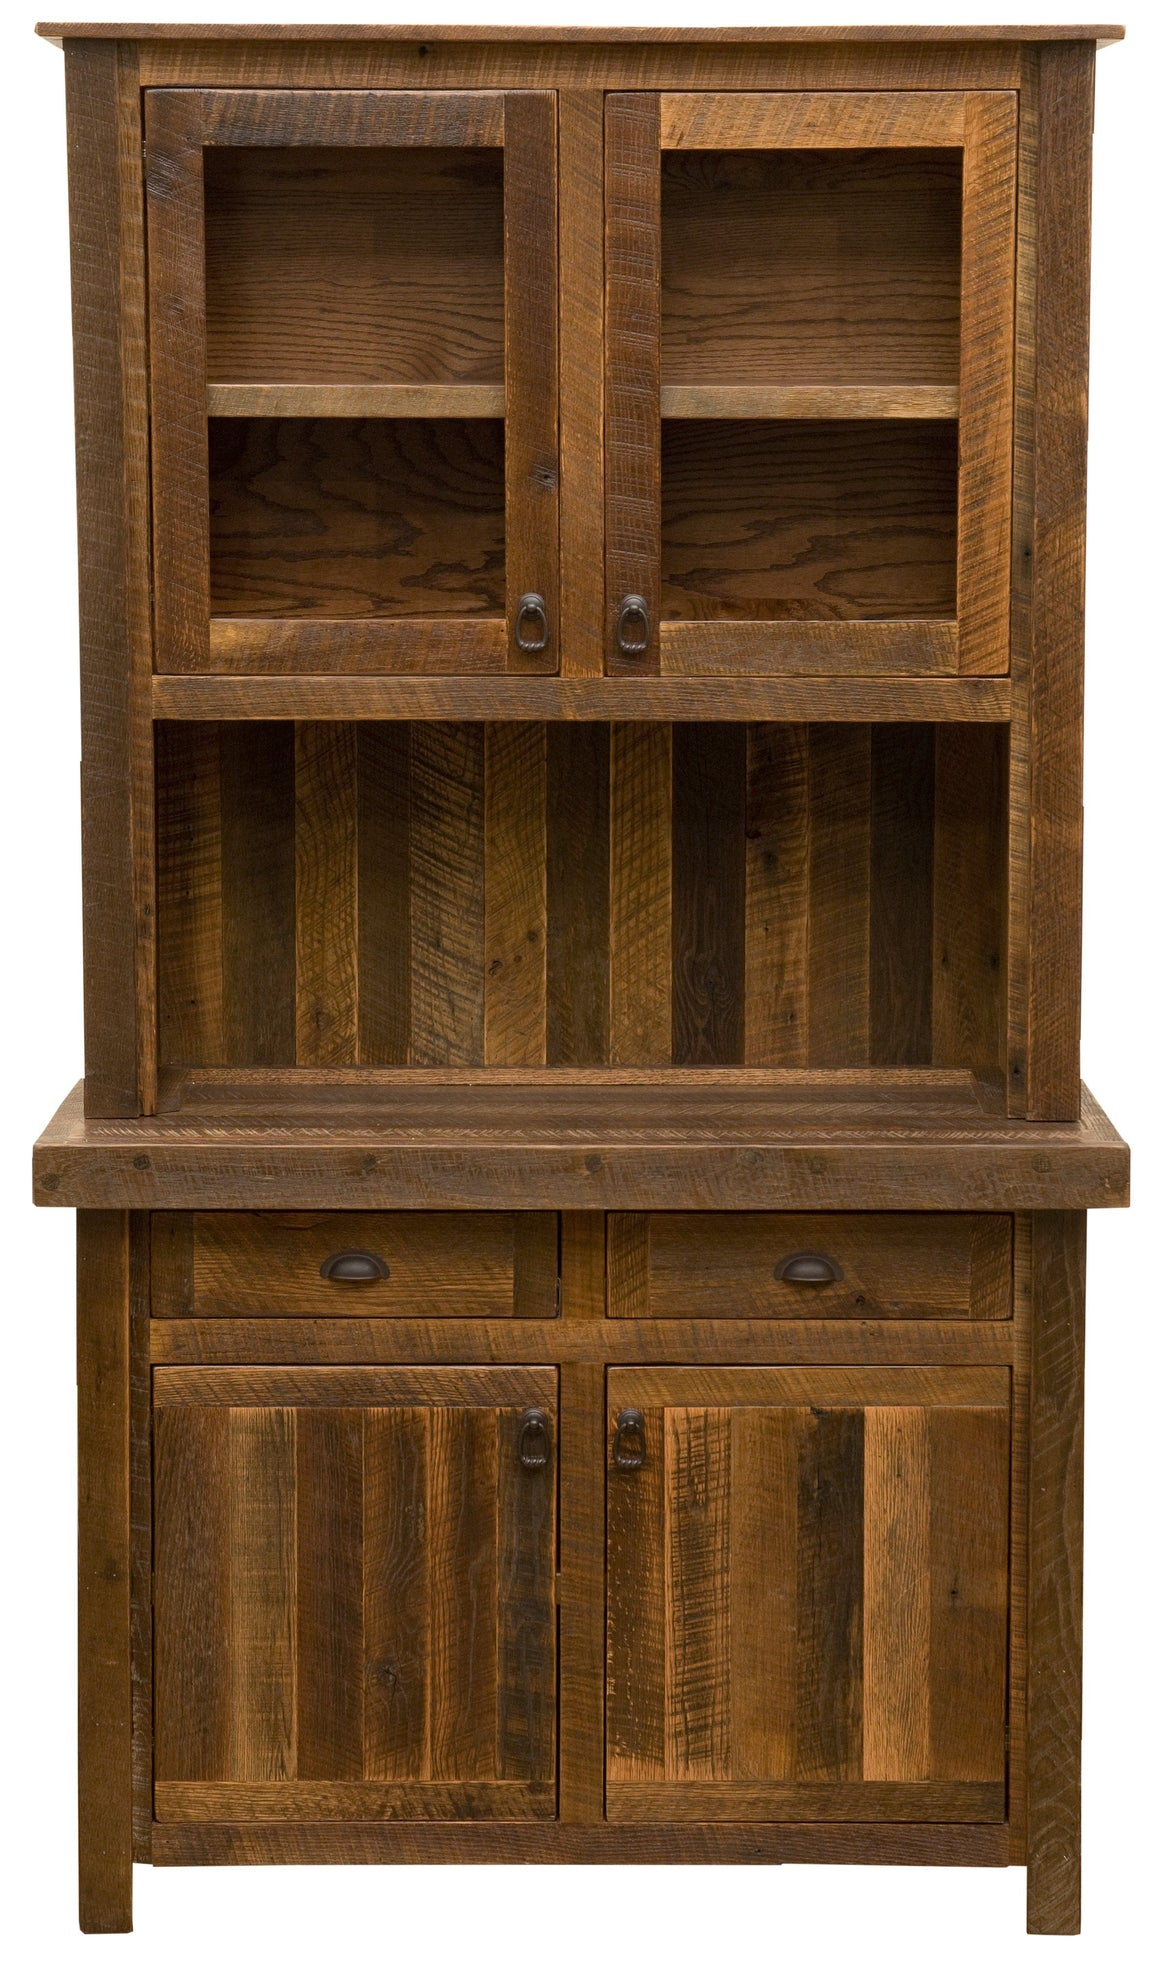 "Barnwood 48"" Buffet & Hutch - Antique Oak Top or Artisan Top-Rustic Deco Incorporated"